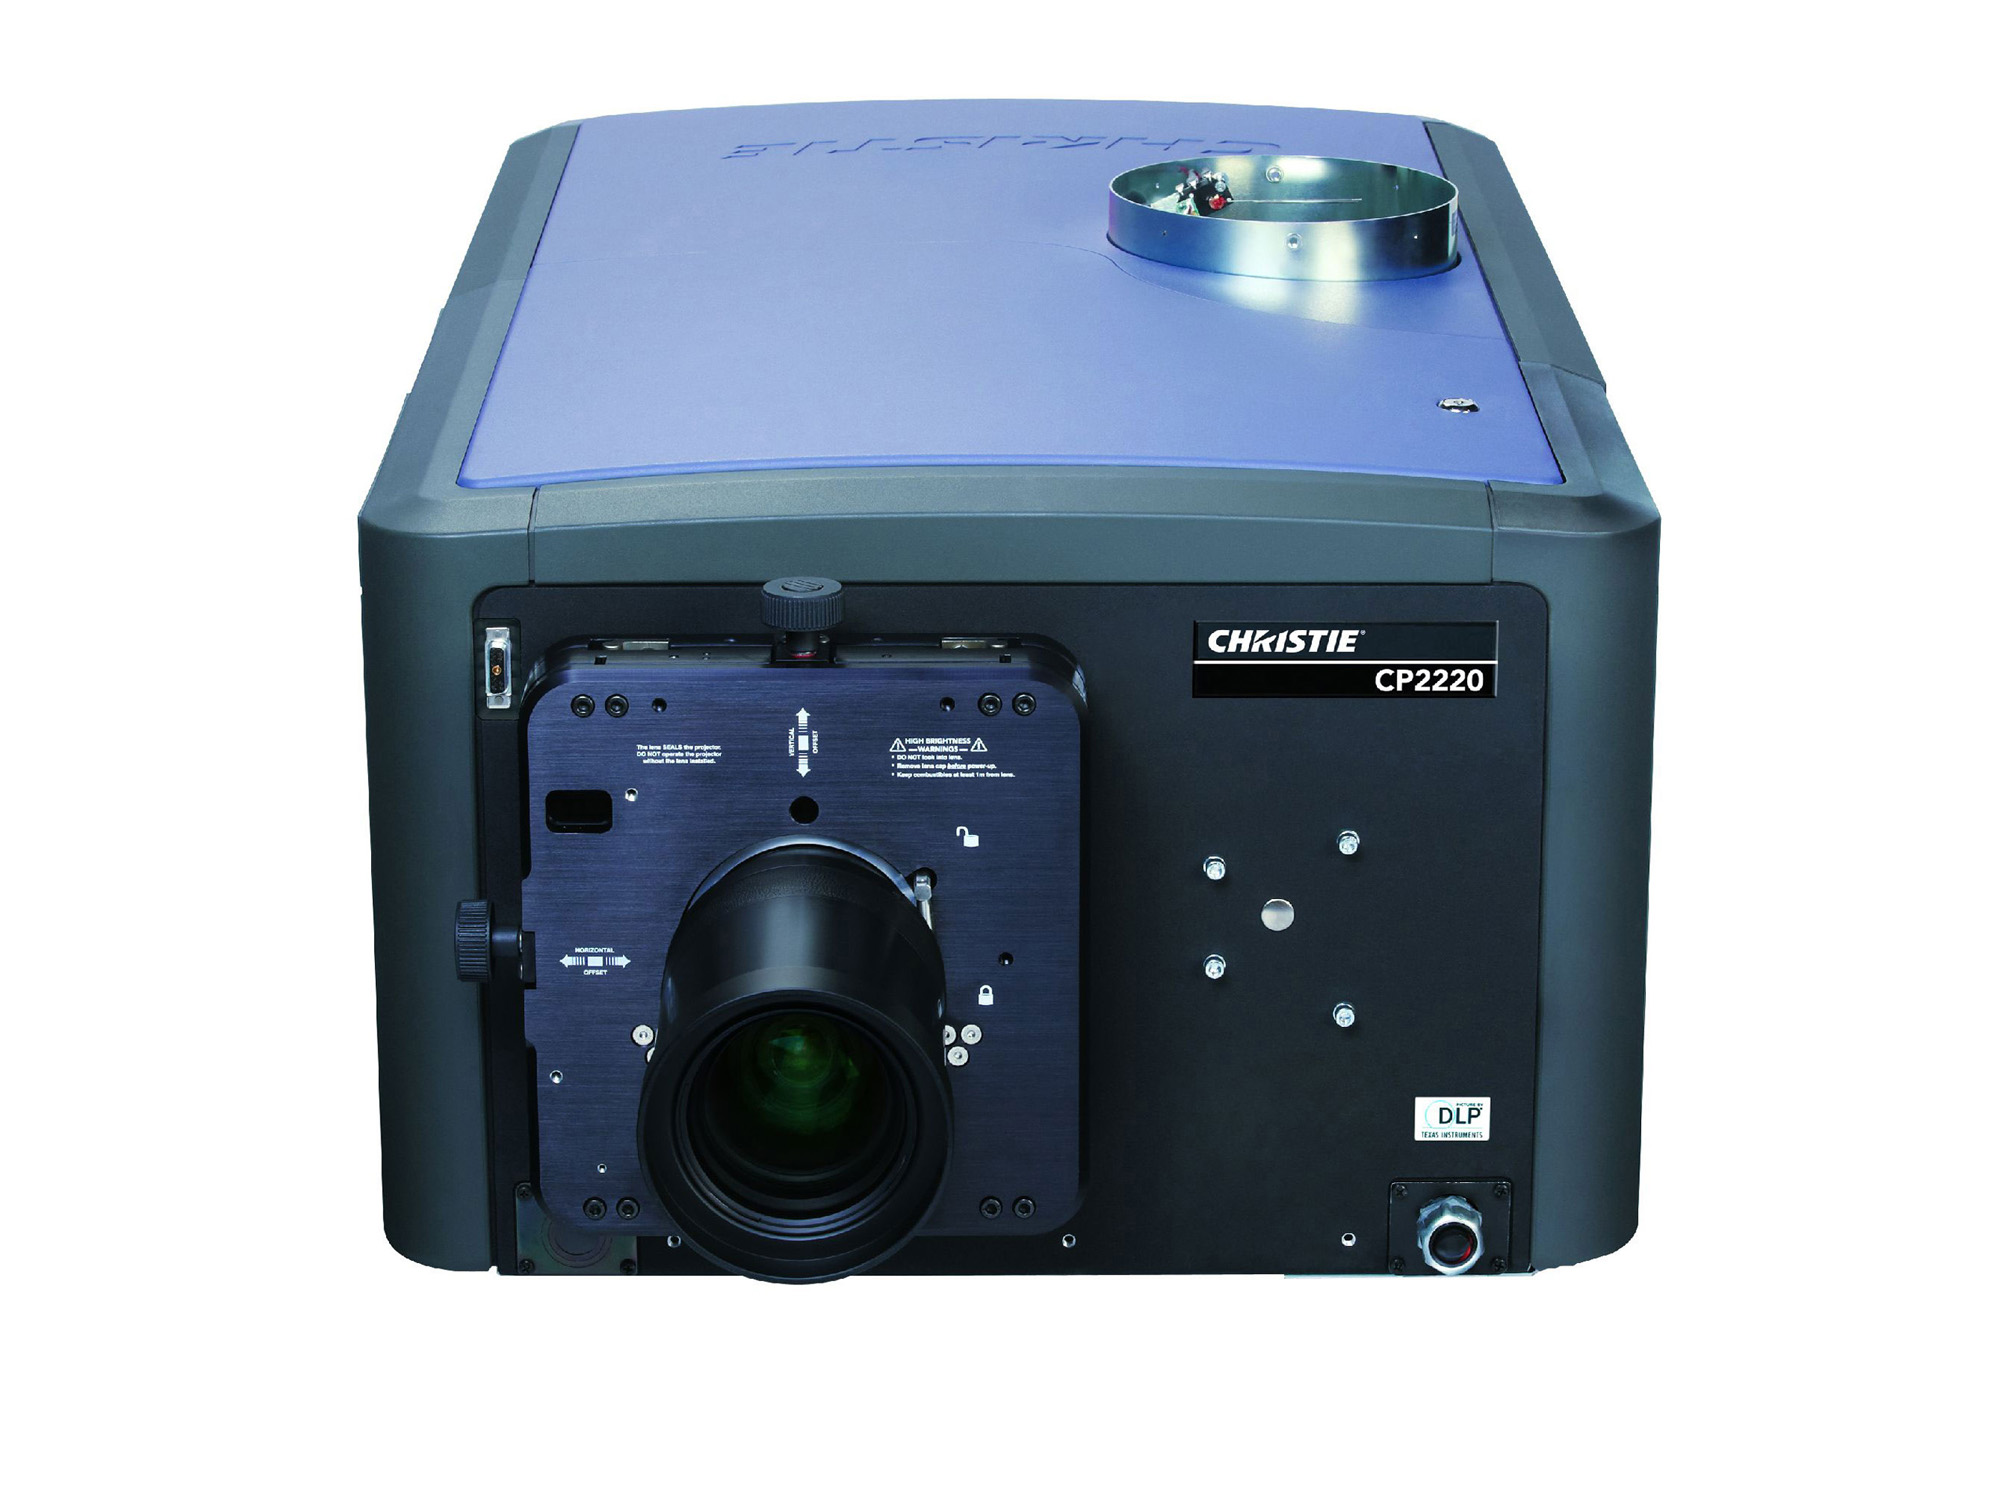 /globalassets/.catalog/products/images/christie-cp2220/gallery/cp2220-digital-cinema-projector-highfront.jpg